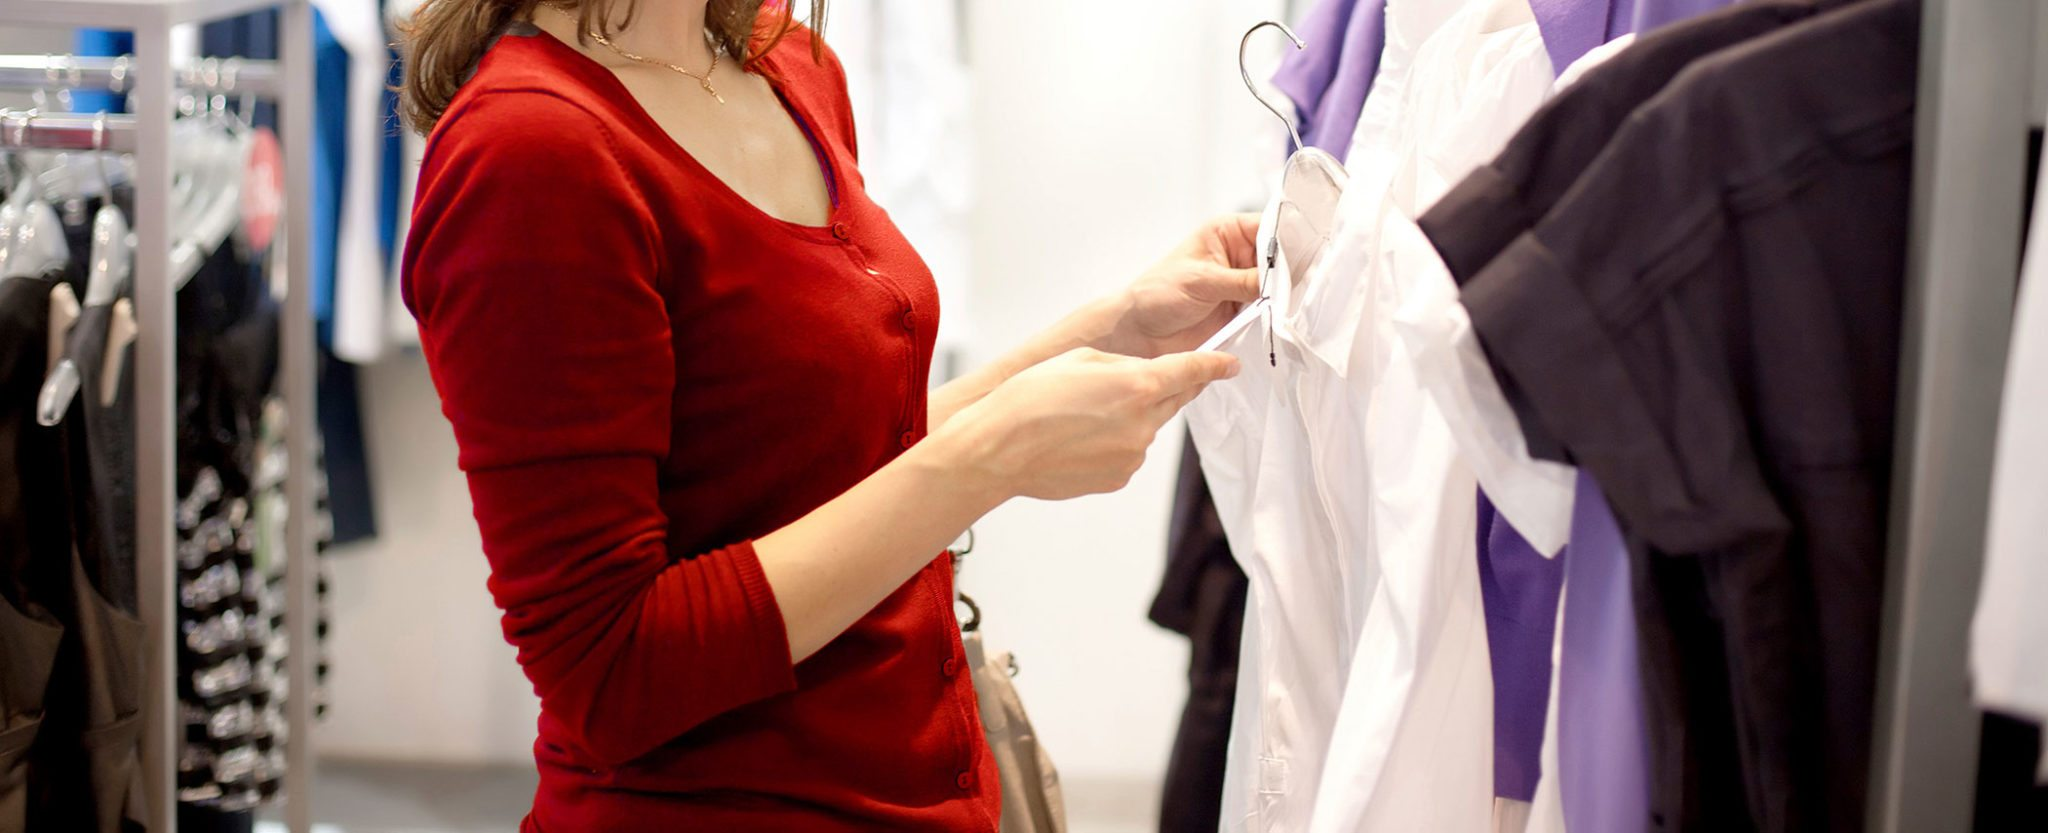 Clothing Changes That Impact Satisfaction